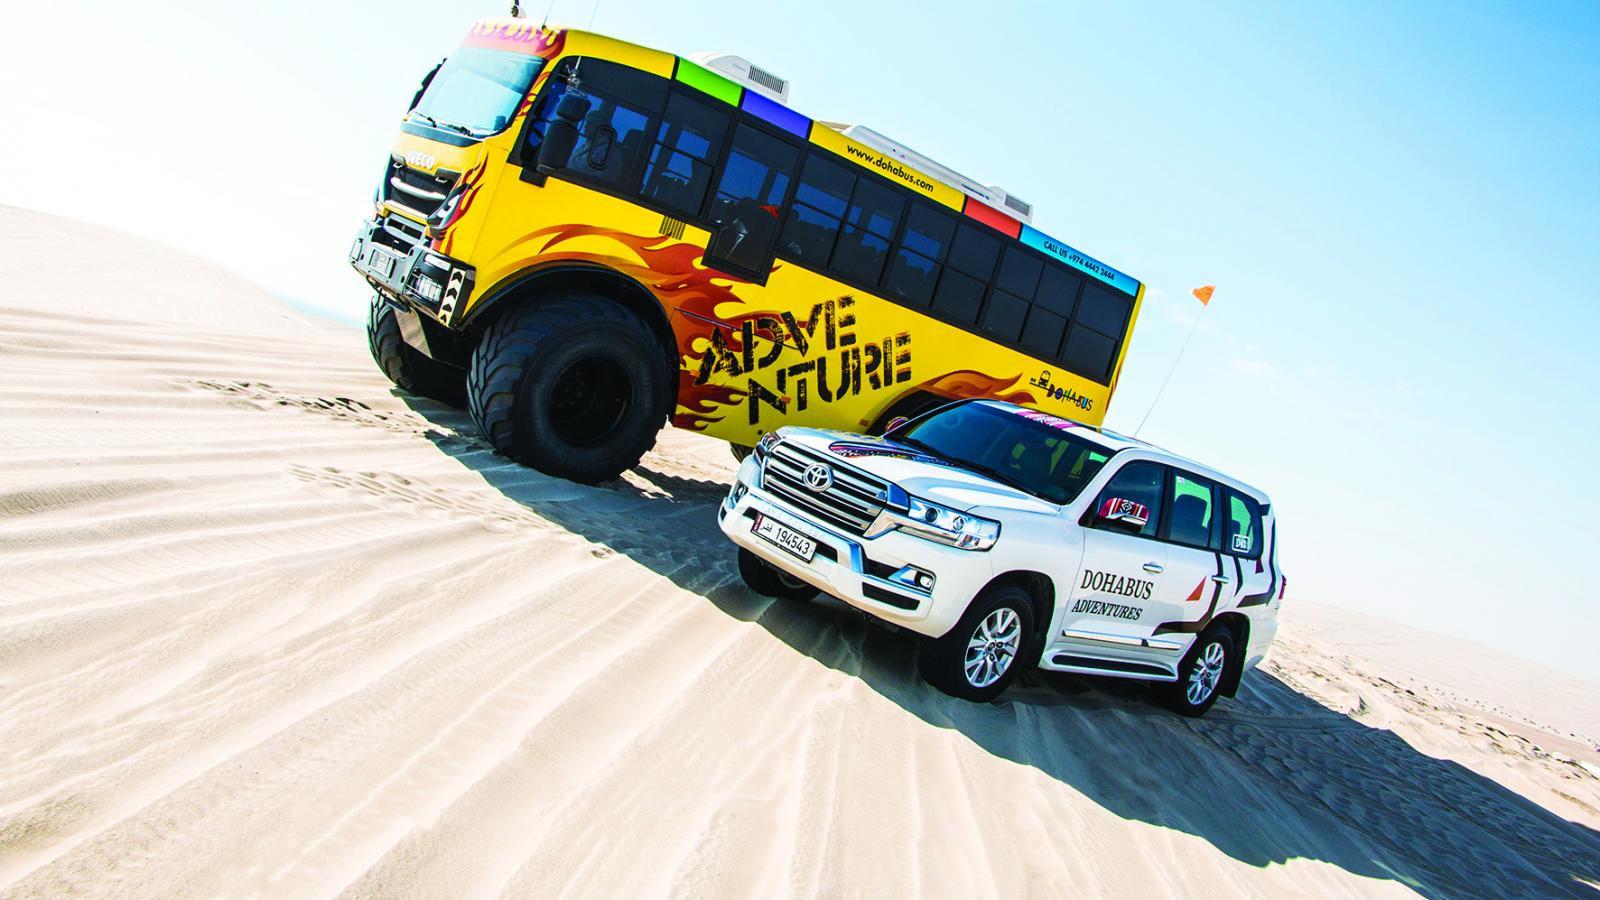 Take a ride through the mighty dunes of Qatar with Doha Bus